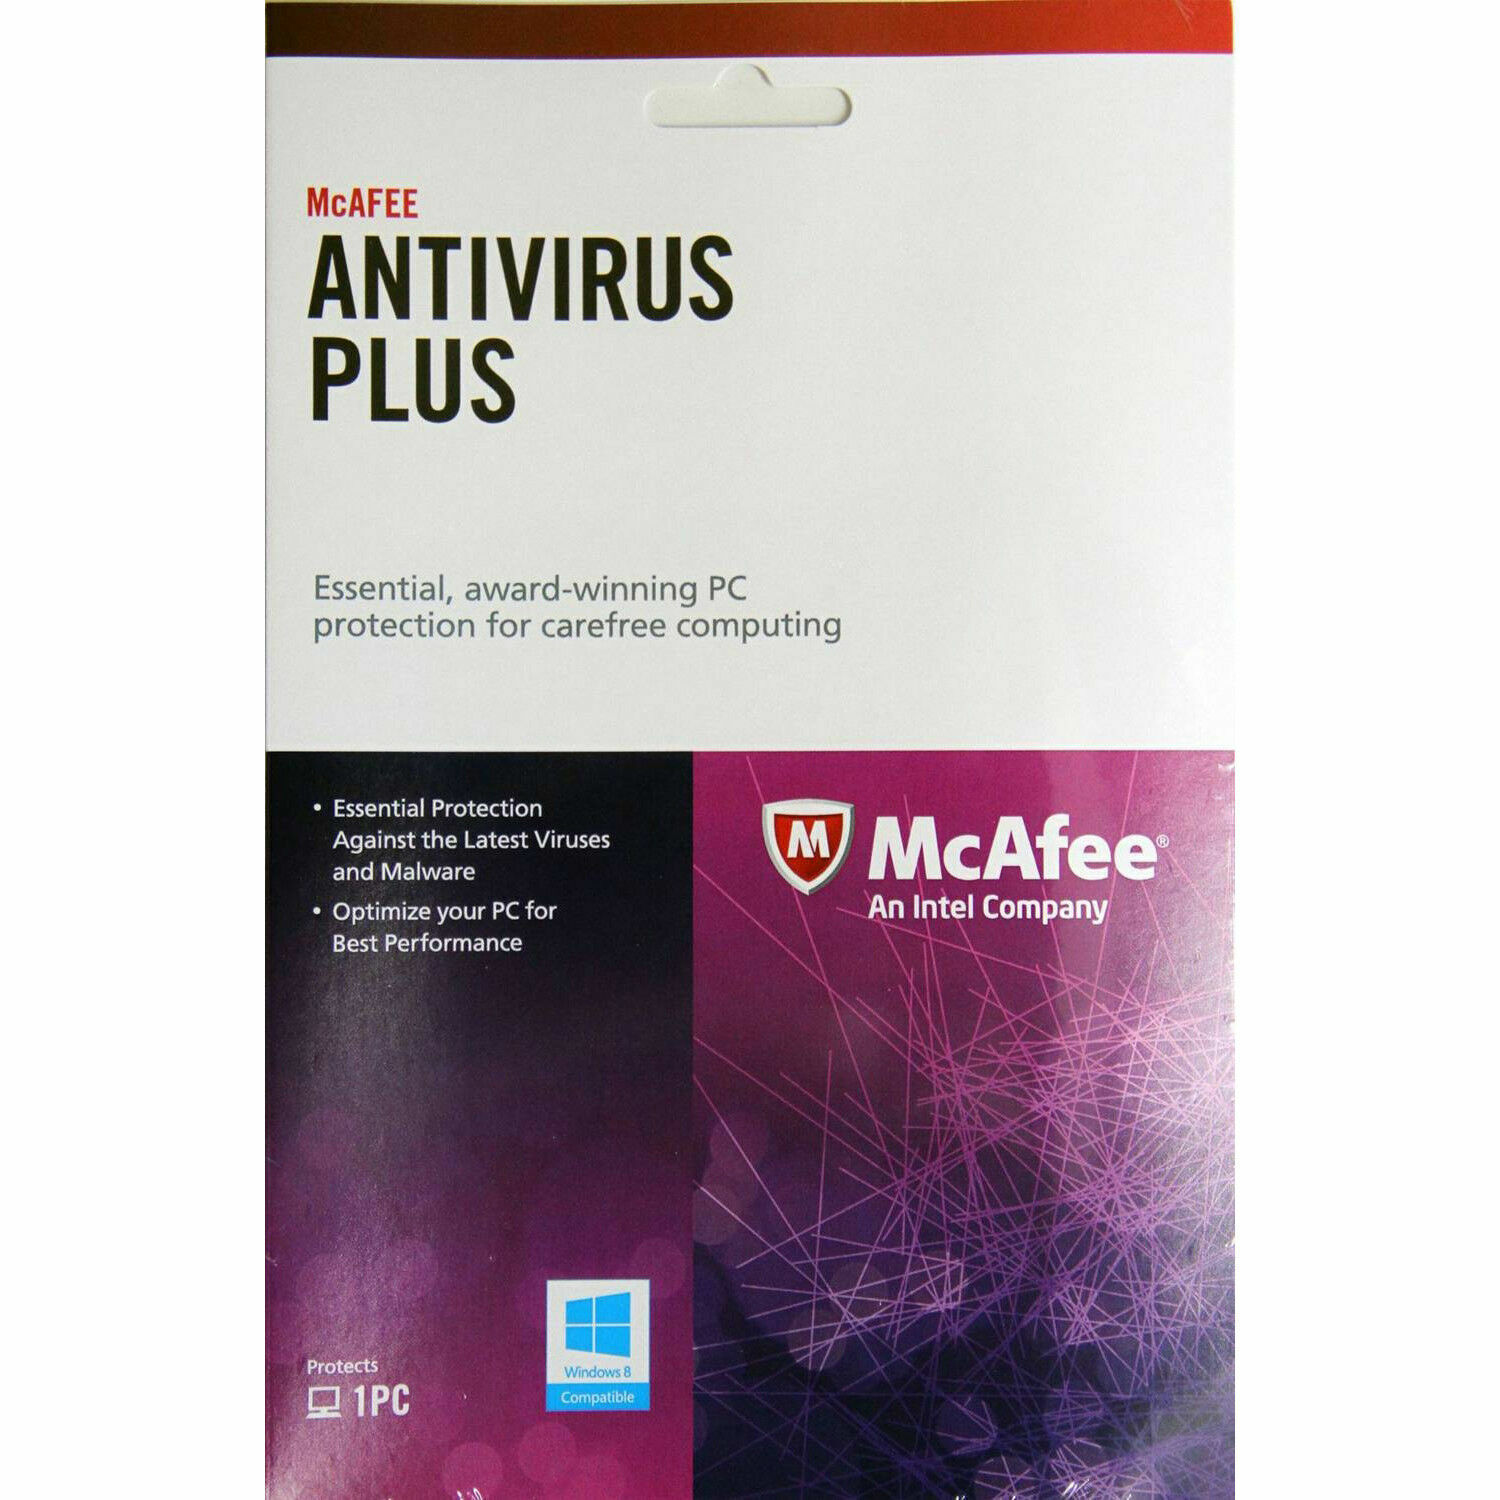 McAfee Antivirus Plus Digital Download Key Card Single PC - Subscription  license (1 Year)